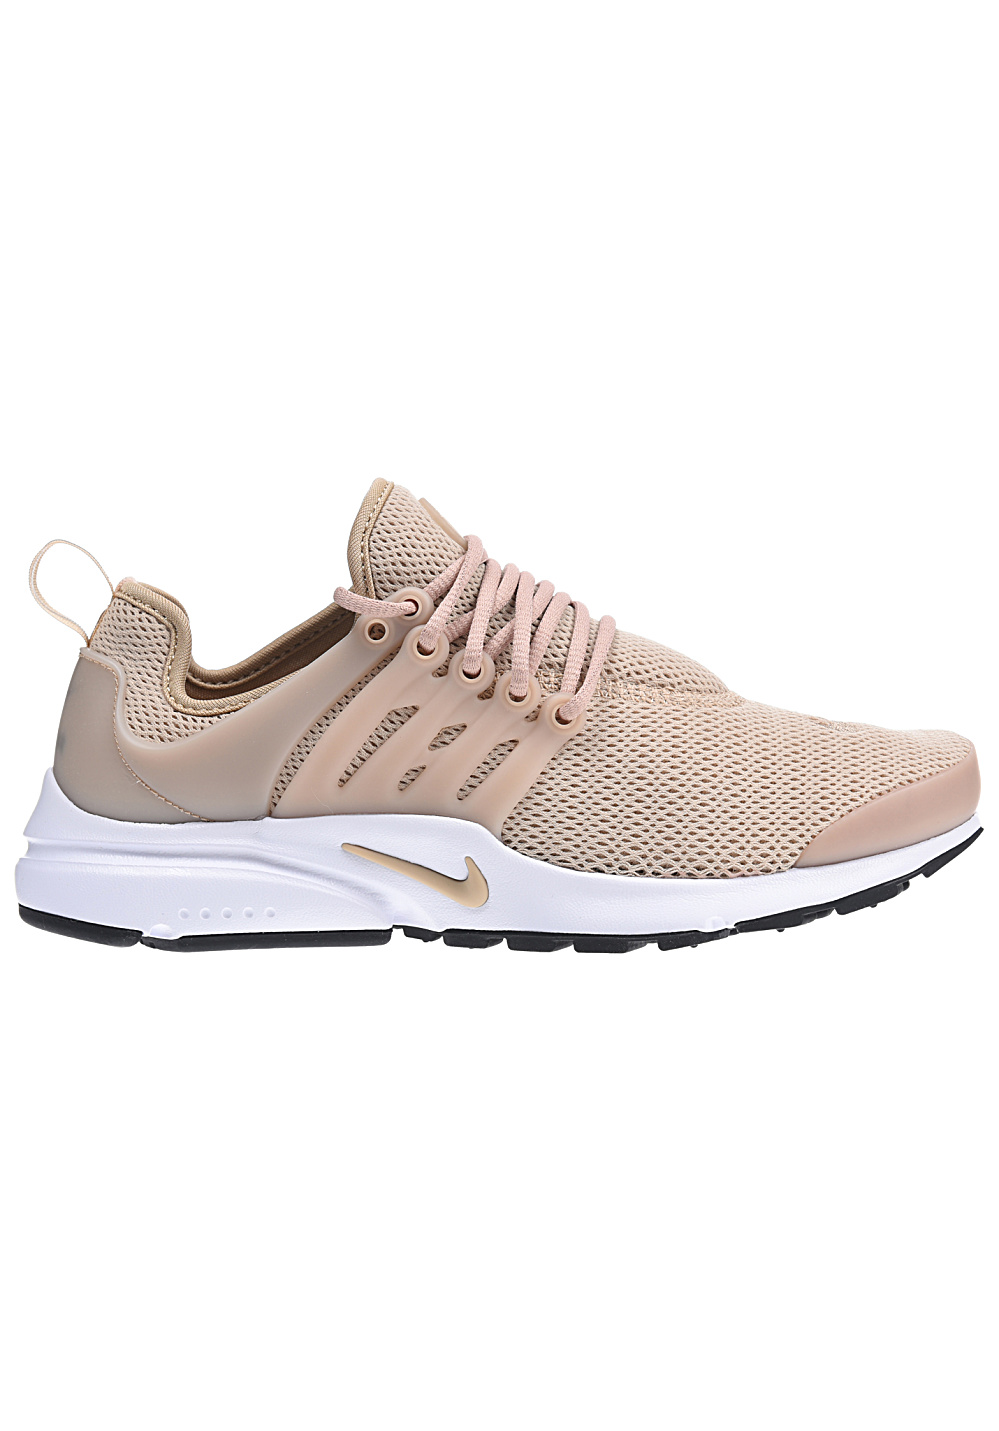 nike sportswear air presto sneakers for women beige planet sports. Black Bedroom Furniture Sets. Home Design Ideas